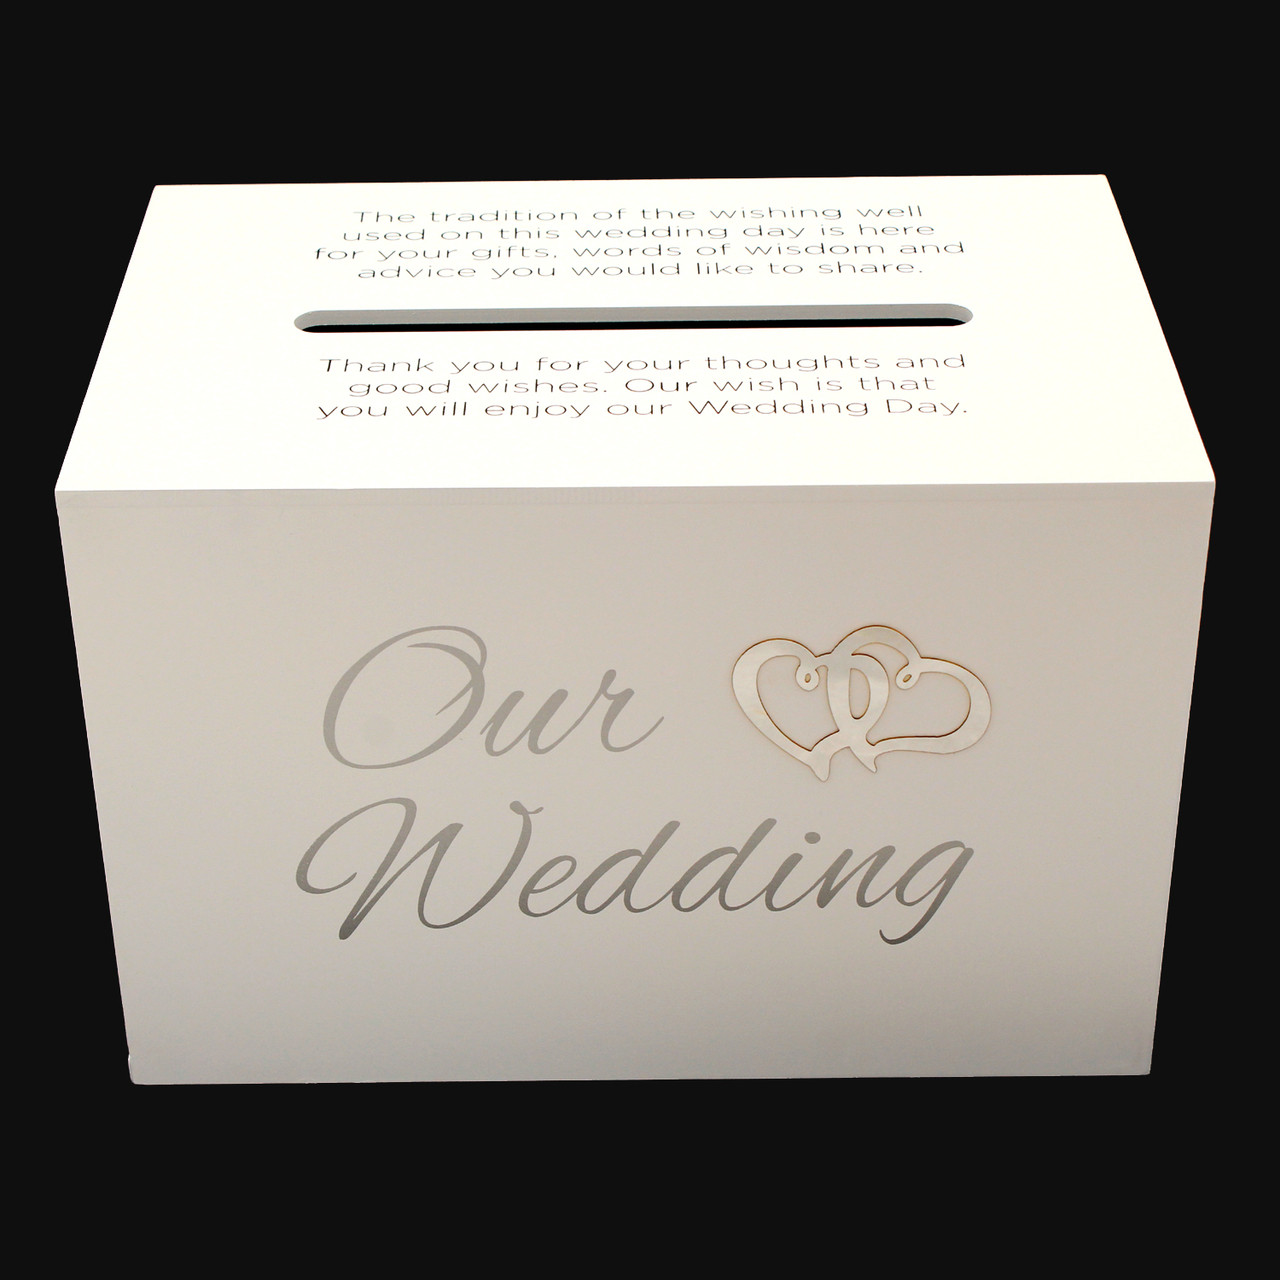 Average Cost Of Wedding Gift: Our Wedding Wishing Well Card Holder